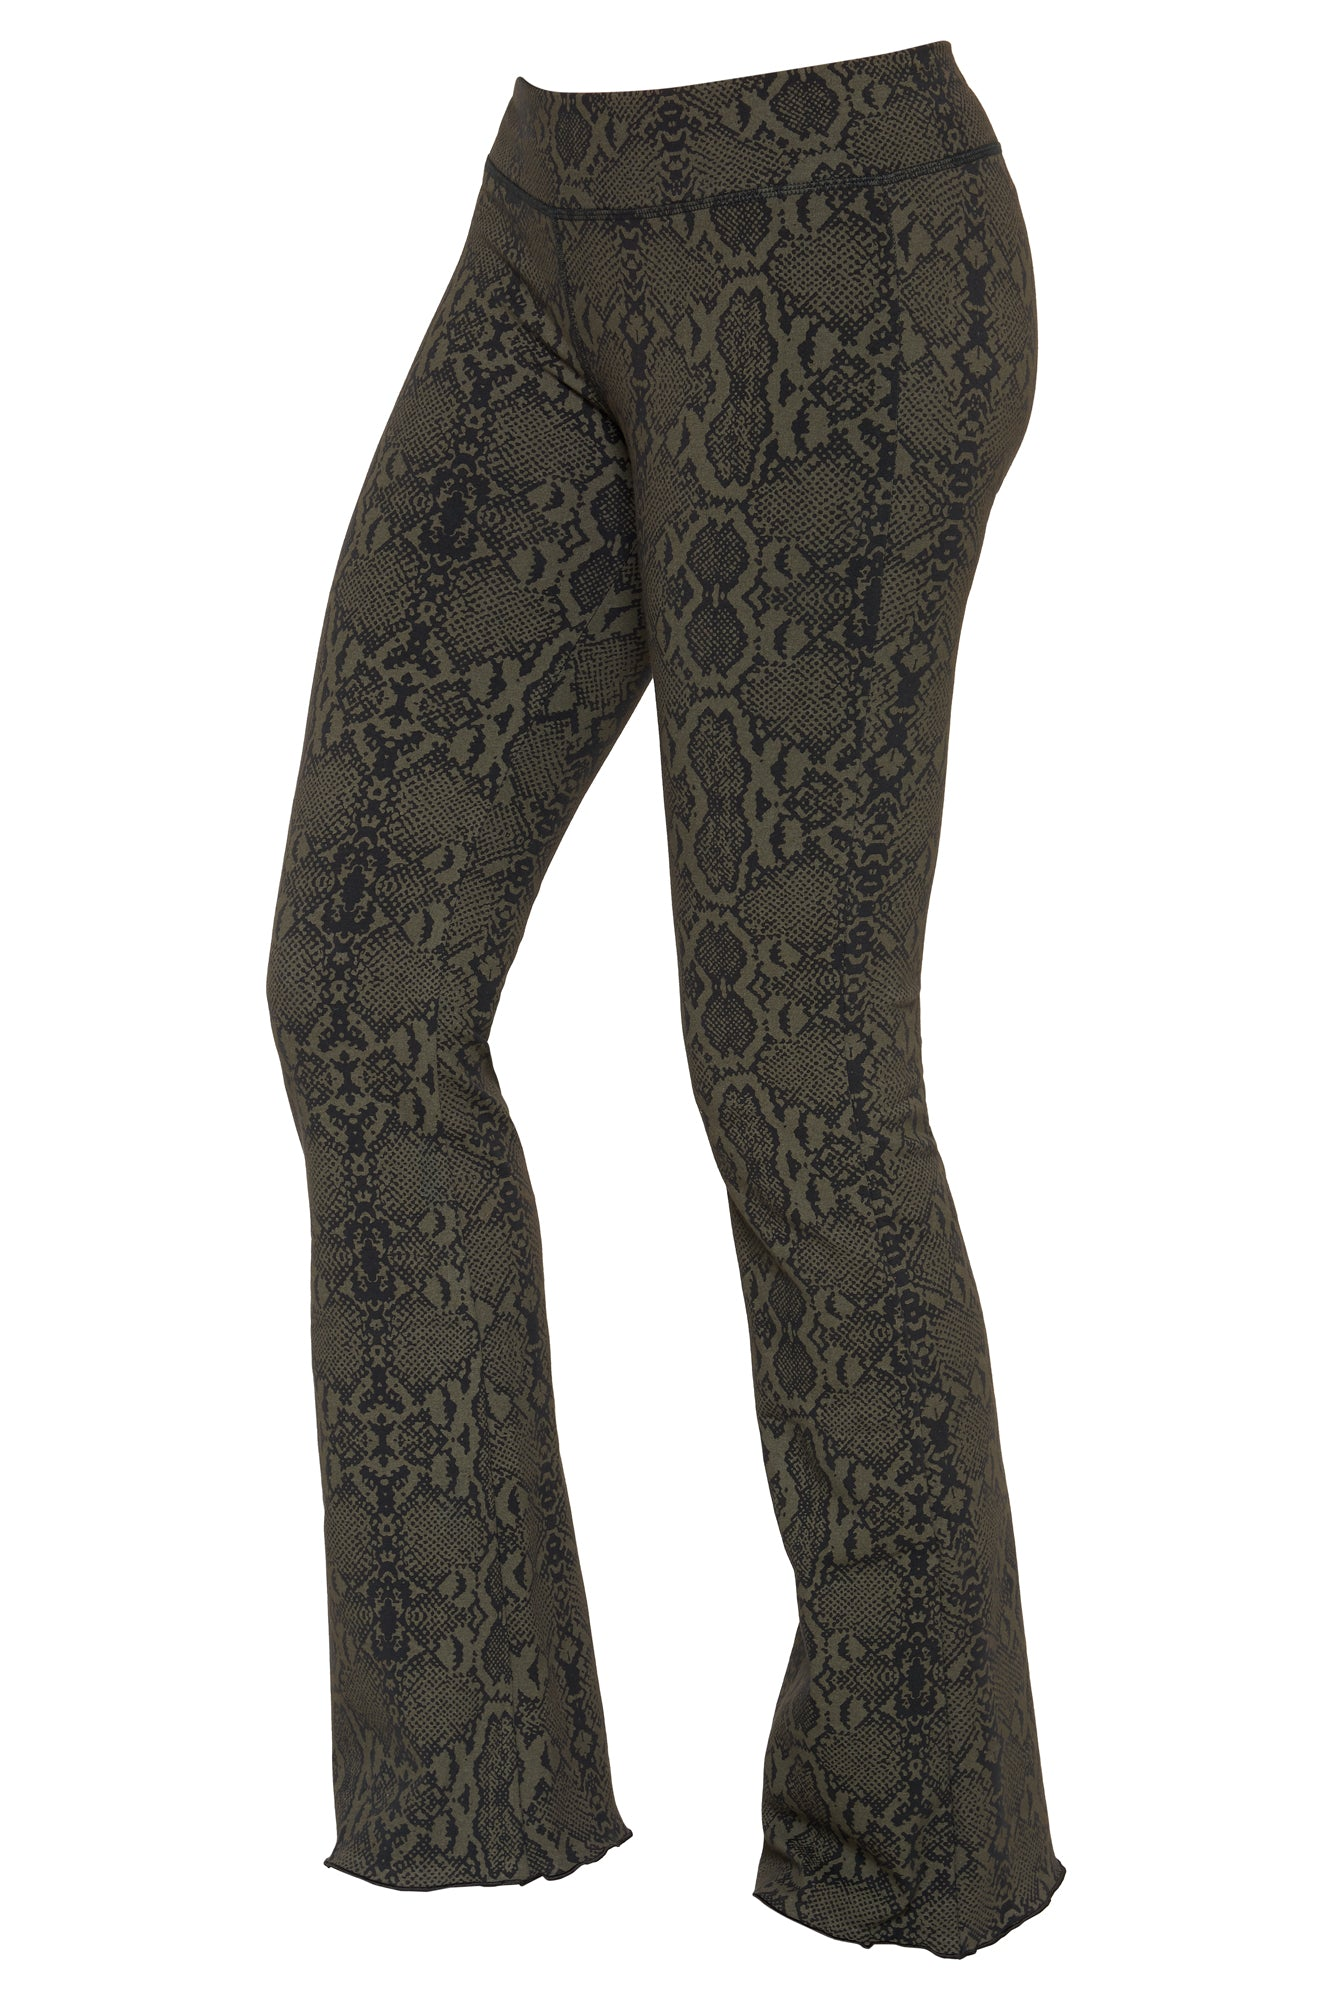 Flared leggings - Snake Black - FUNKY SIMPLICITY